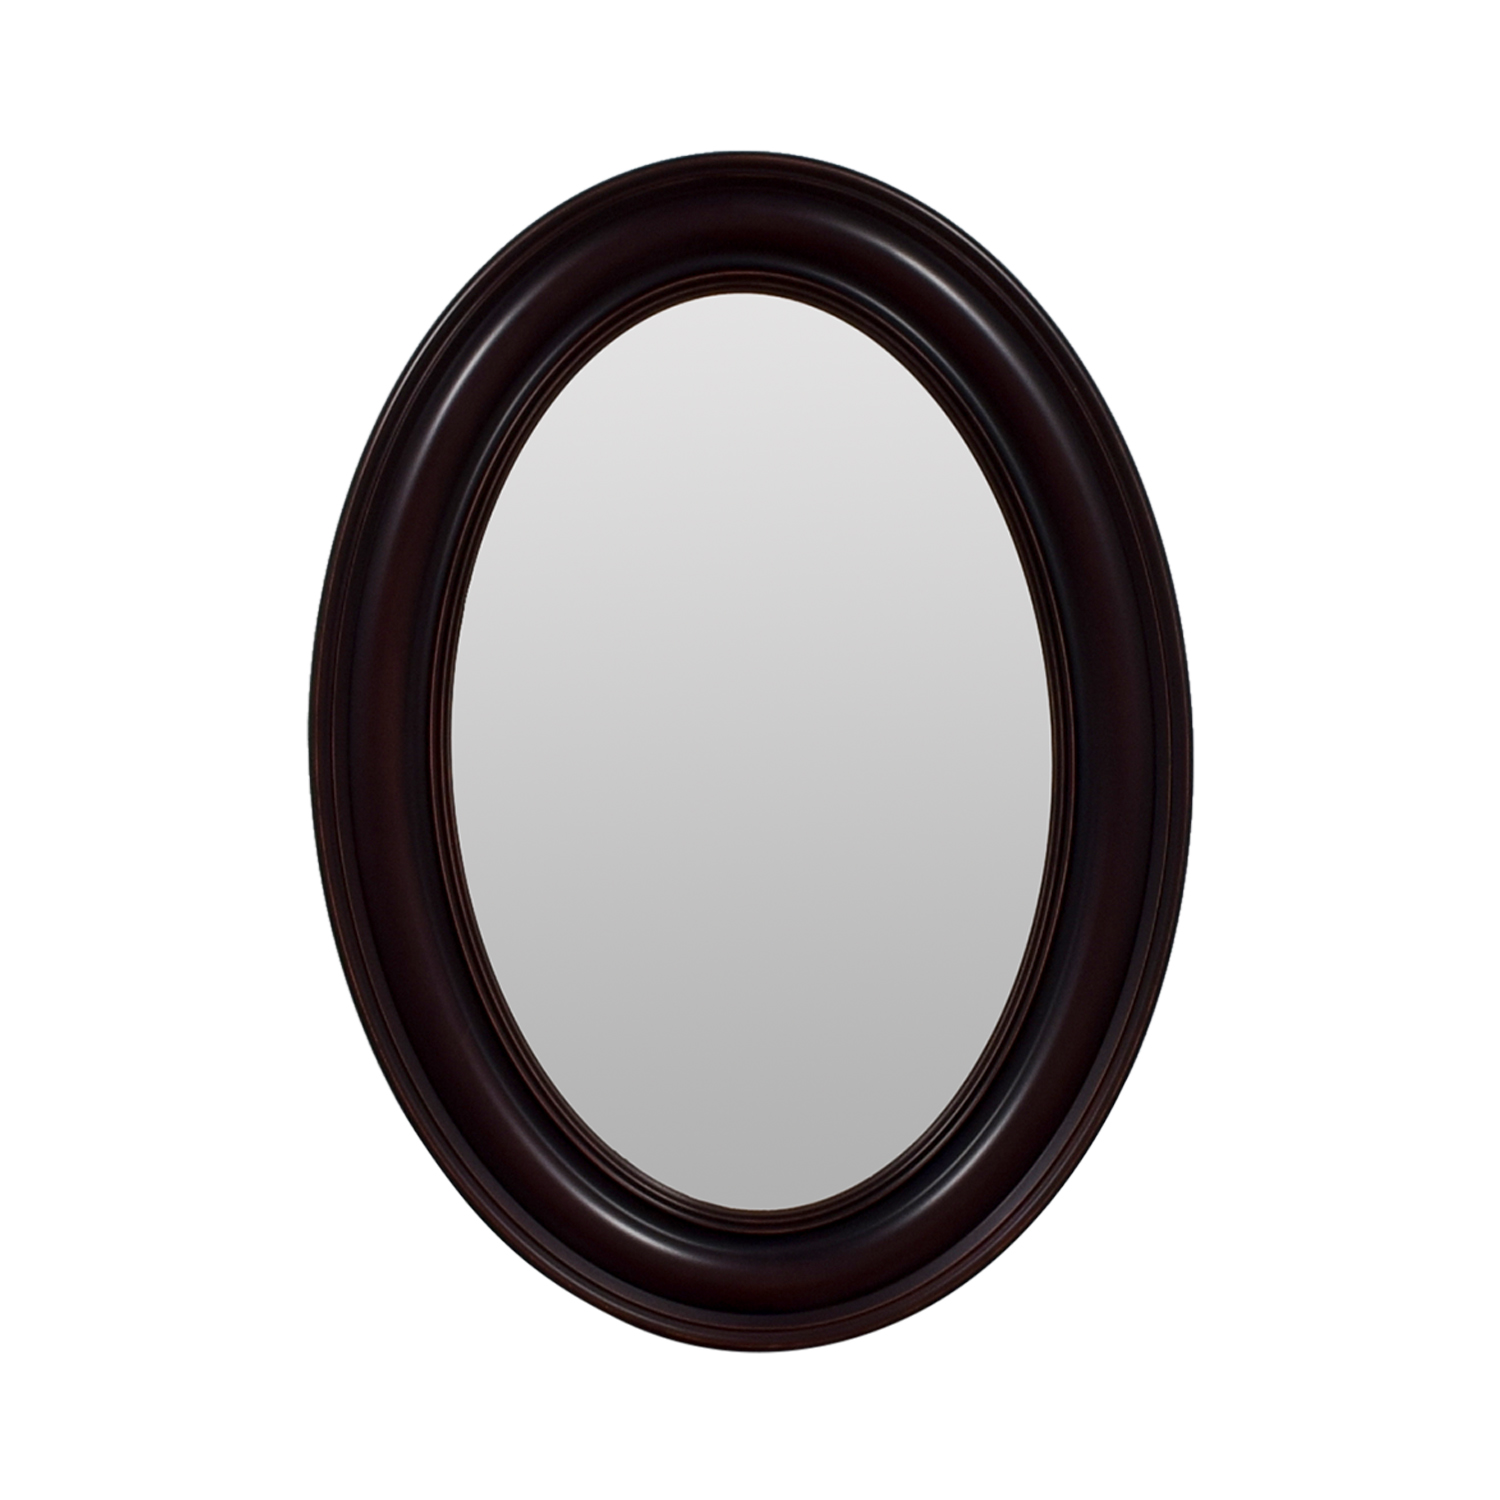 Pottery Barn Pottery Barn Oval Mirror for sale